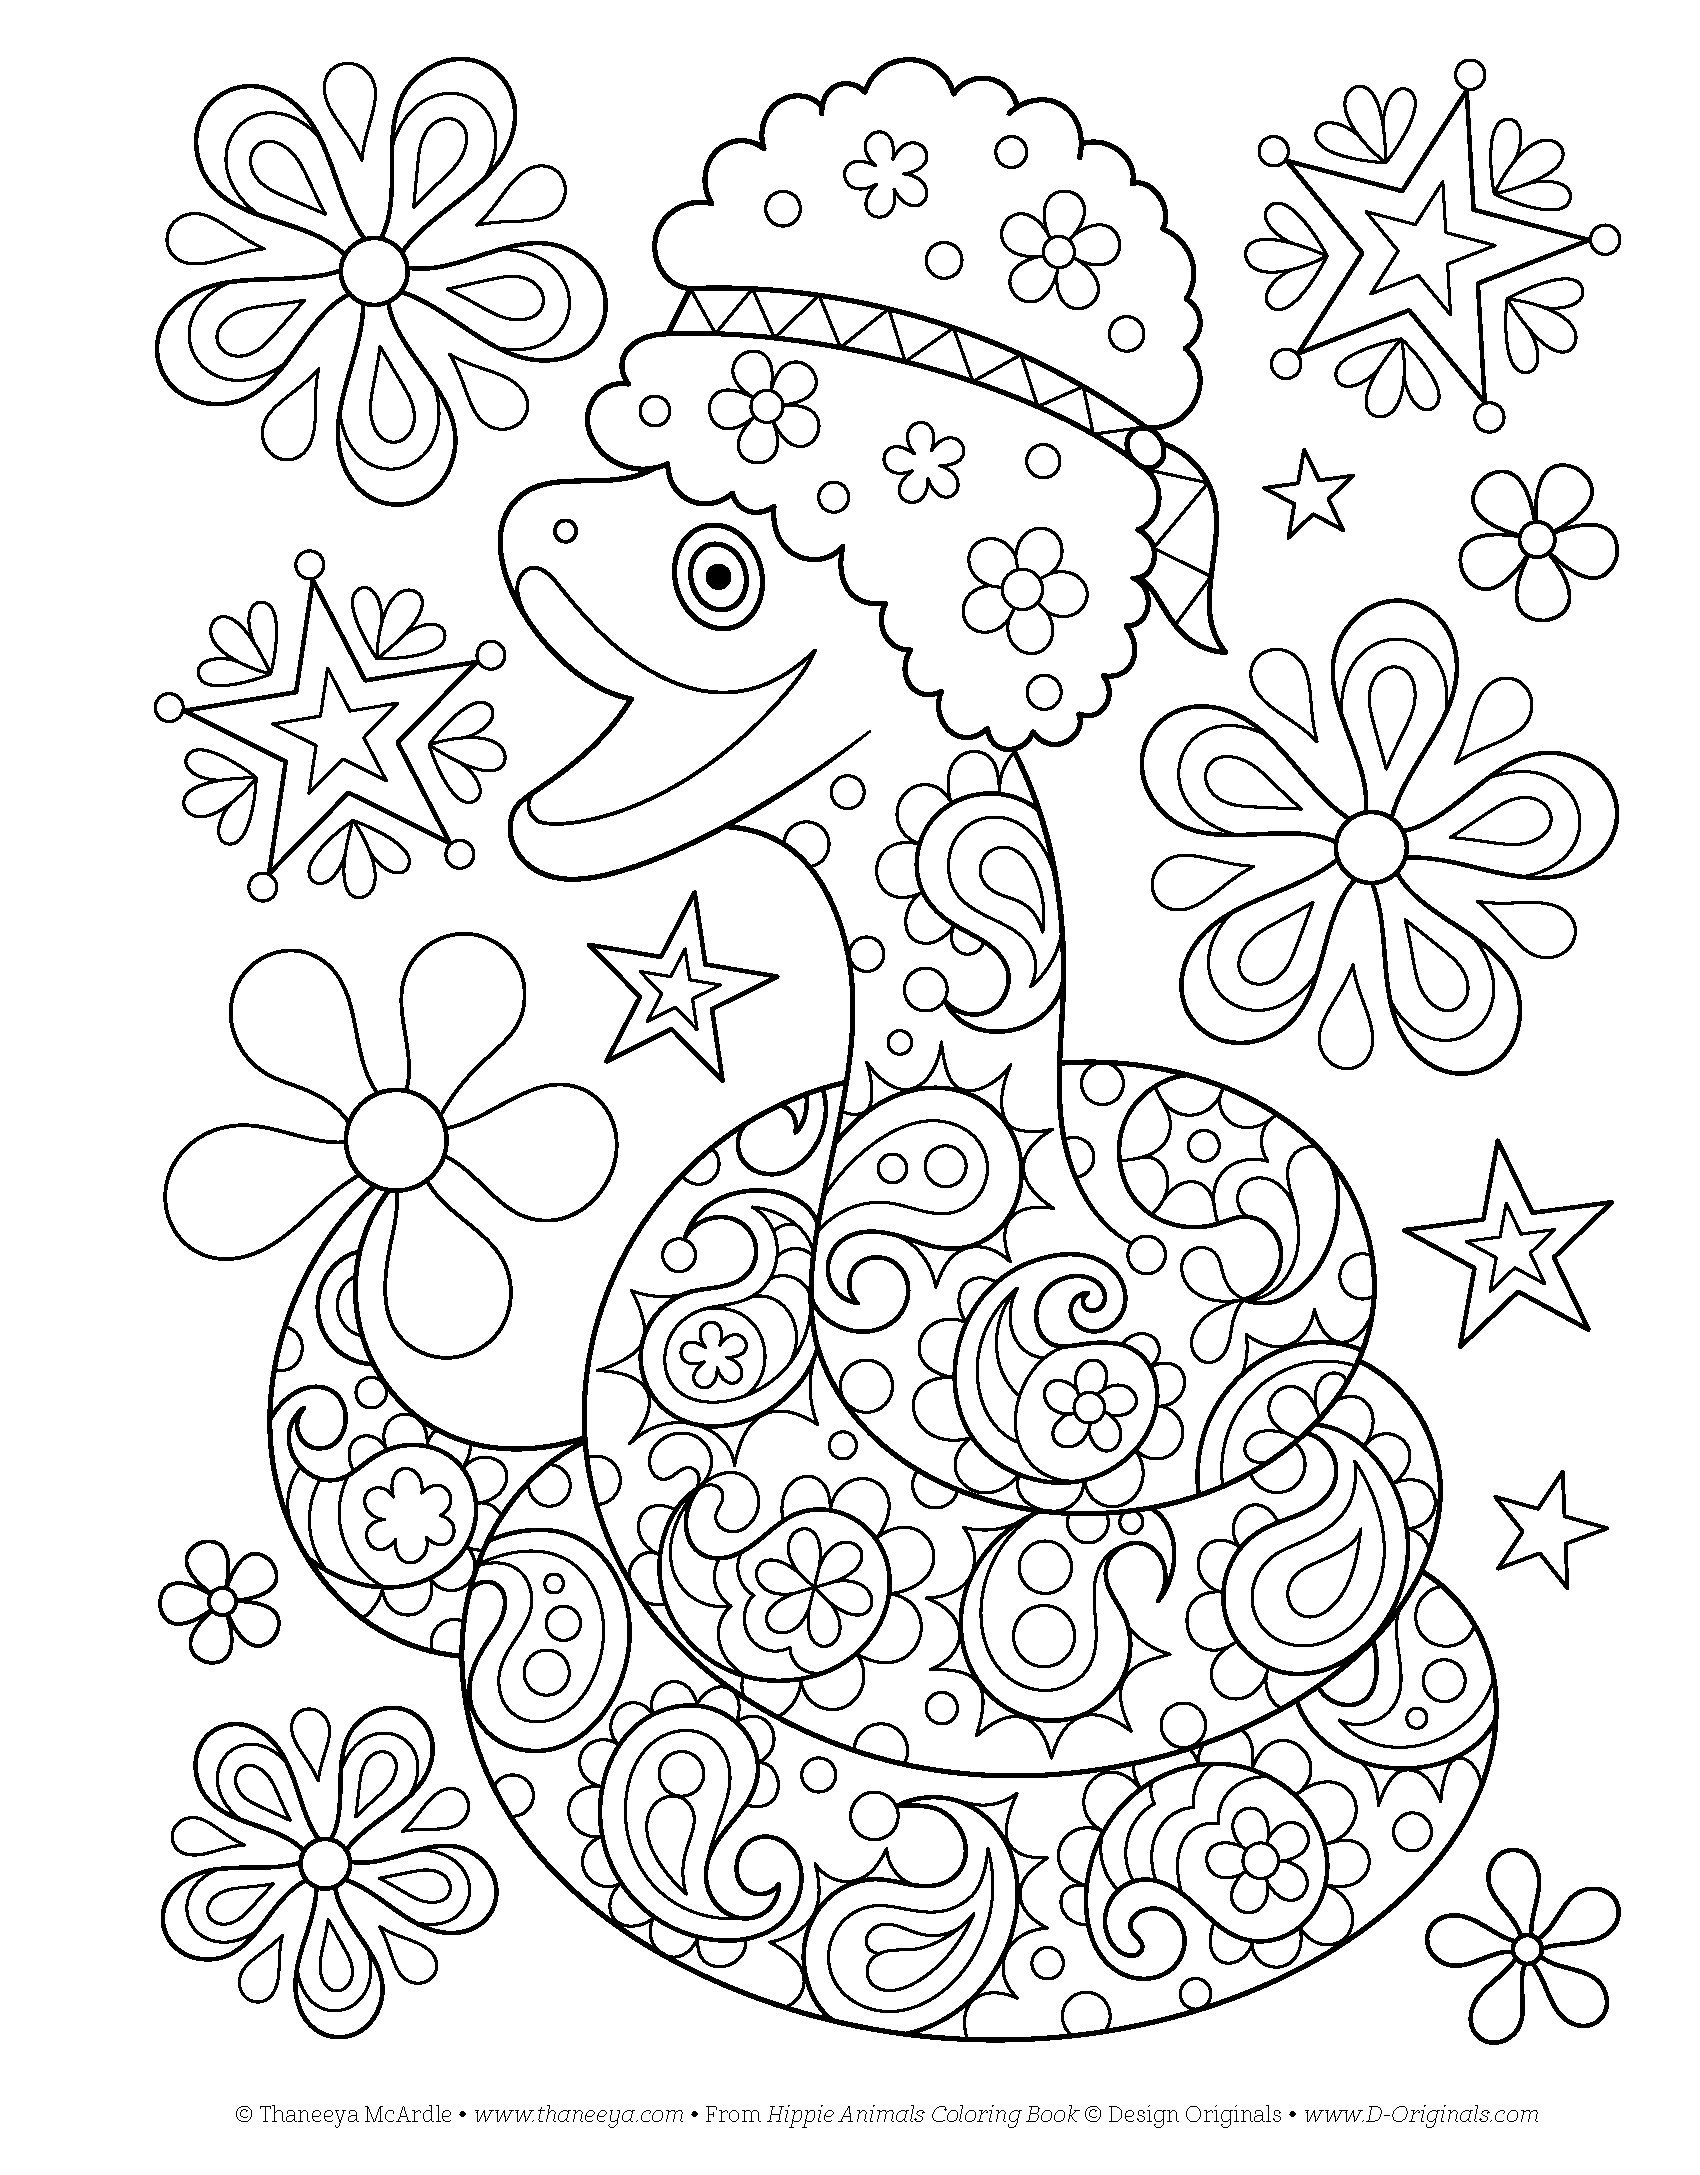 Hippie Animals Coloring Book Coloring Is Fun Amazon